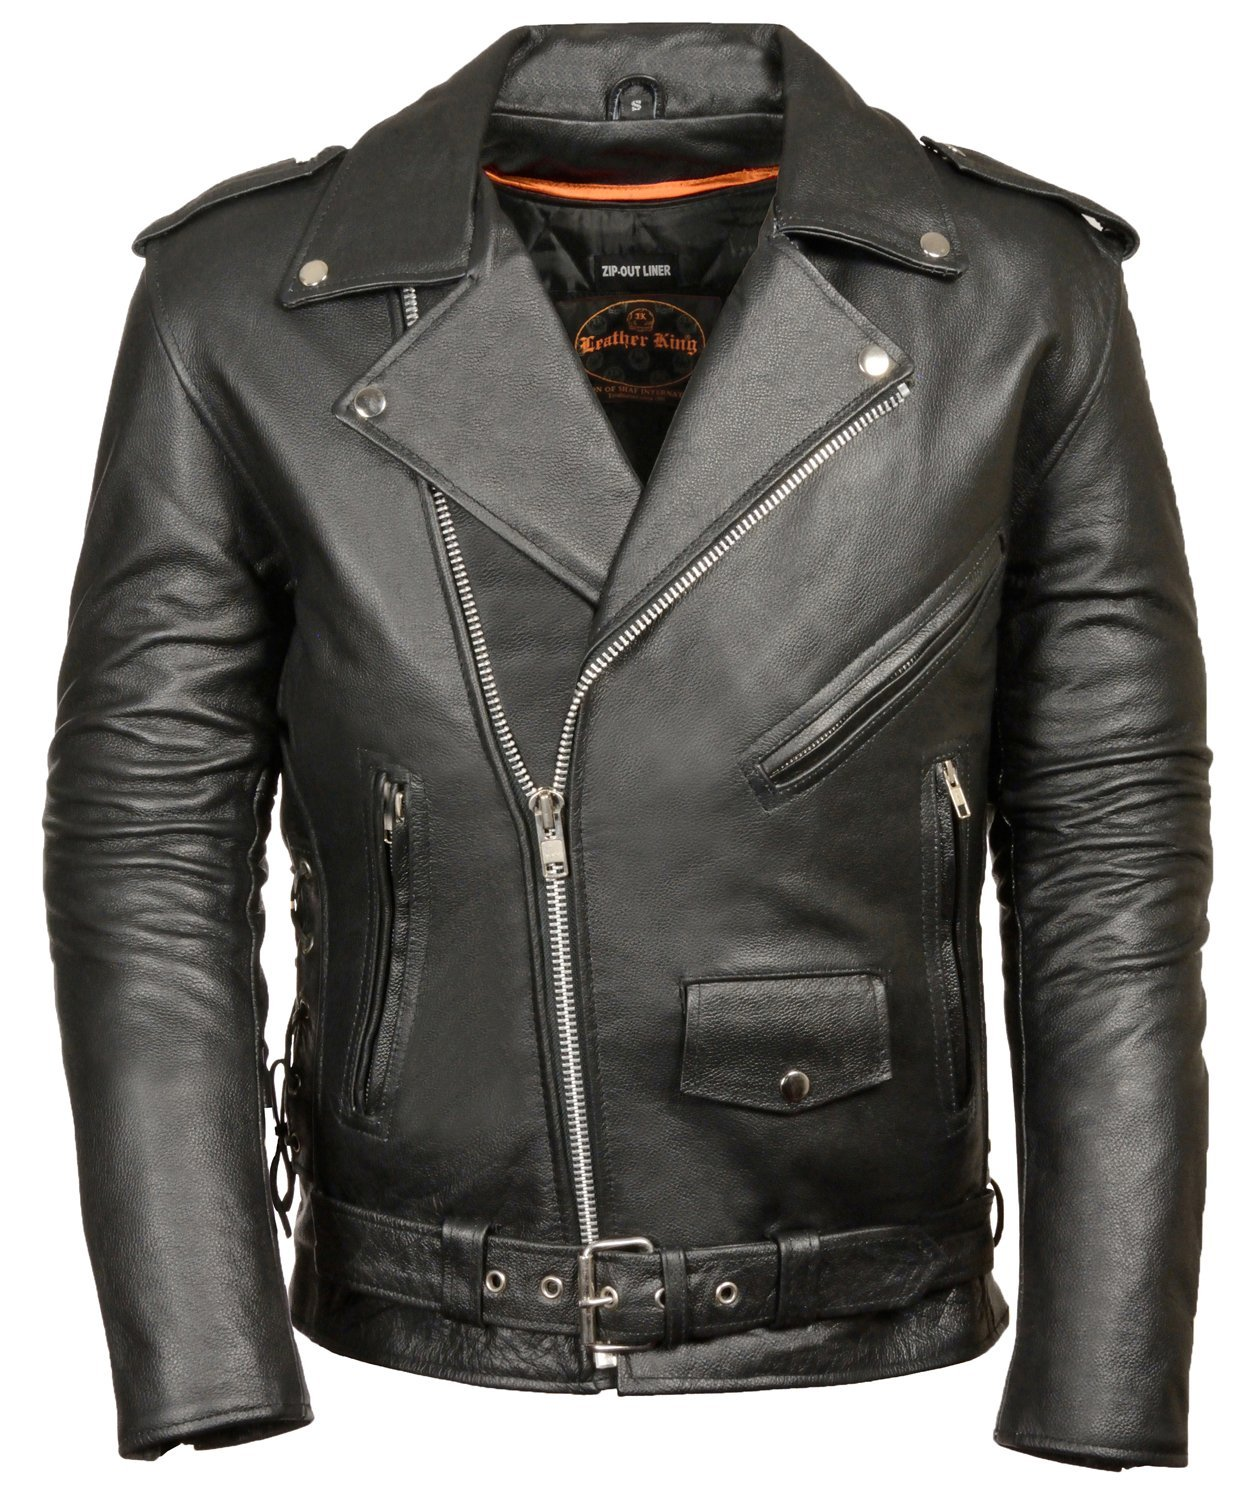 CLASSIC BIKER JACKET HALF BELT & SIDE LACES (Large)